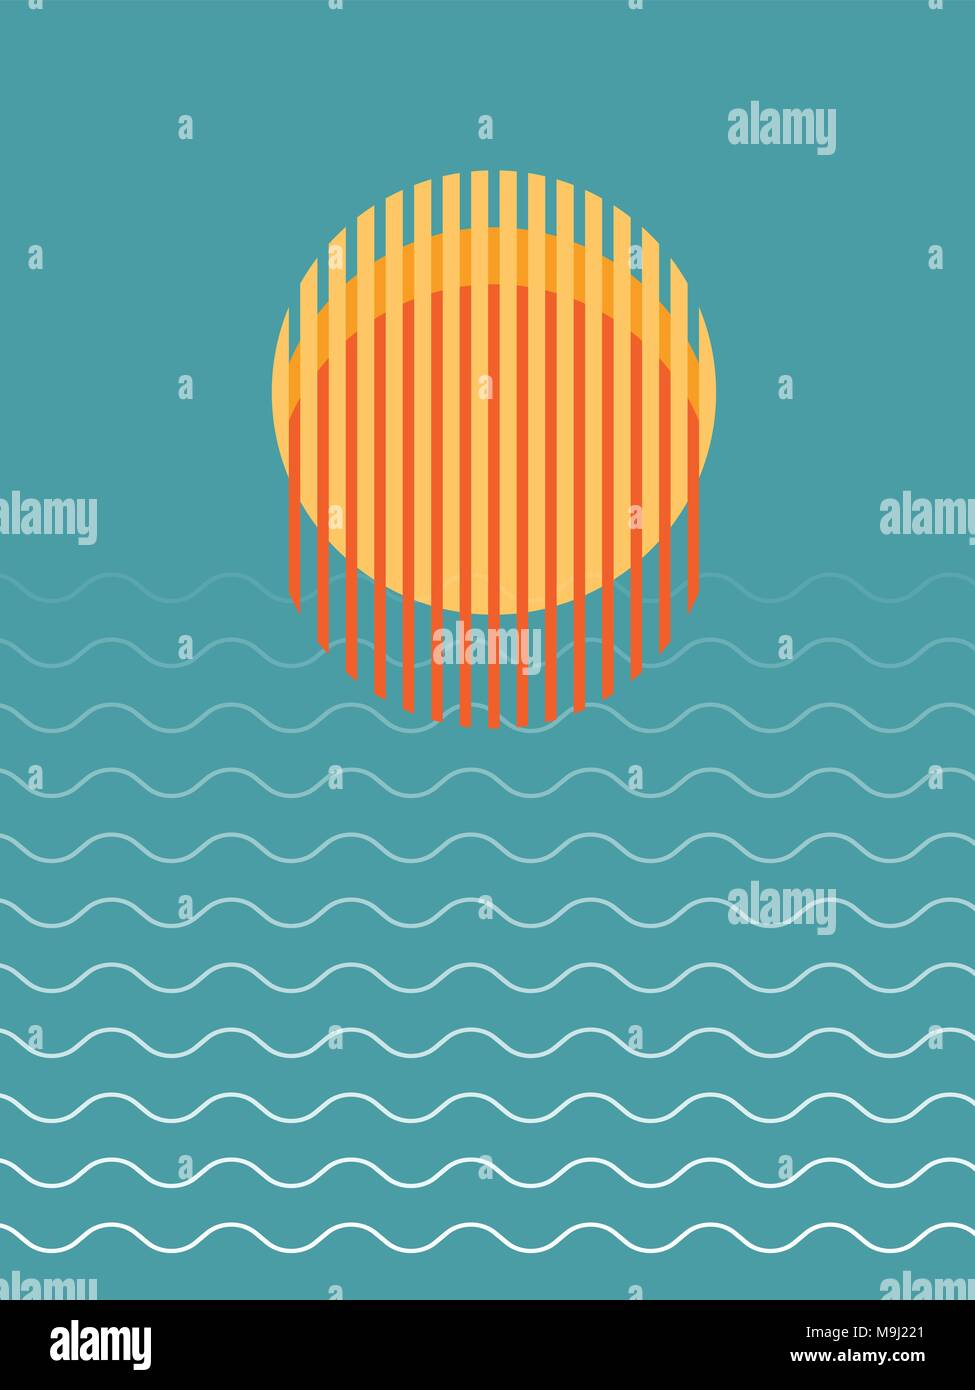 Minimalist Beautiful Sunset Over Ocean Vector Illustration - Stock Vector